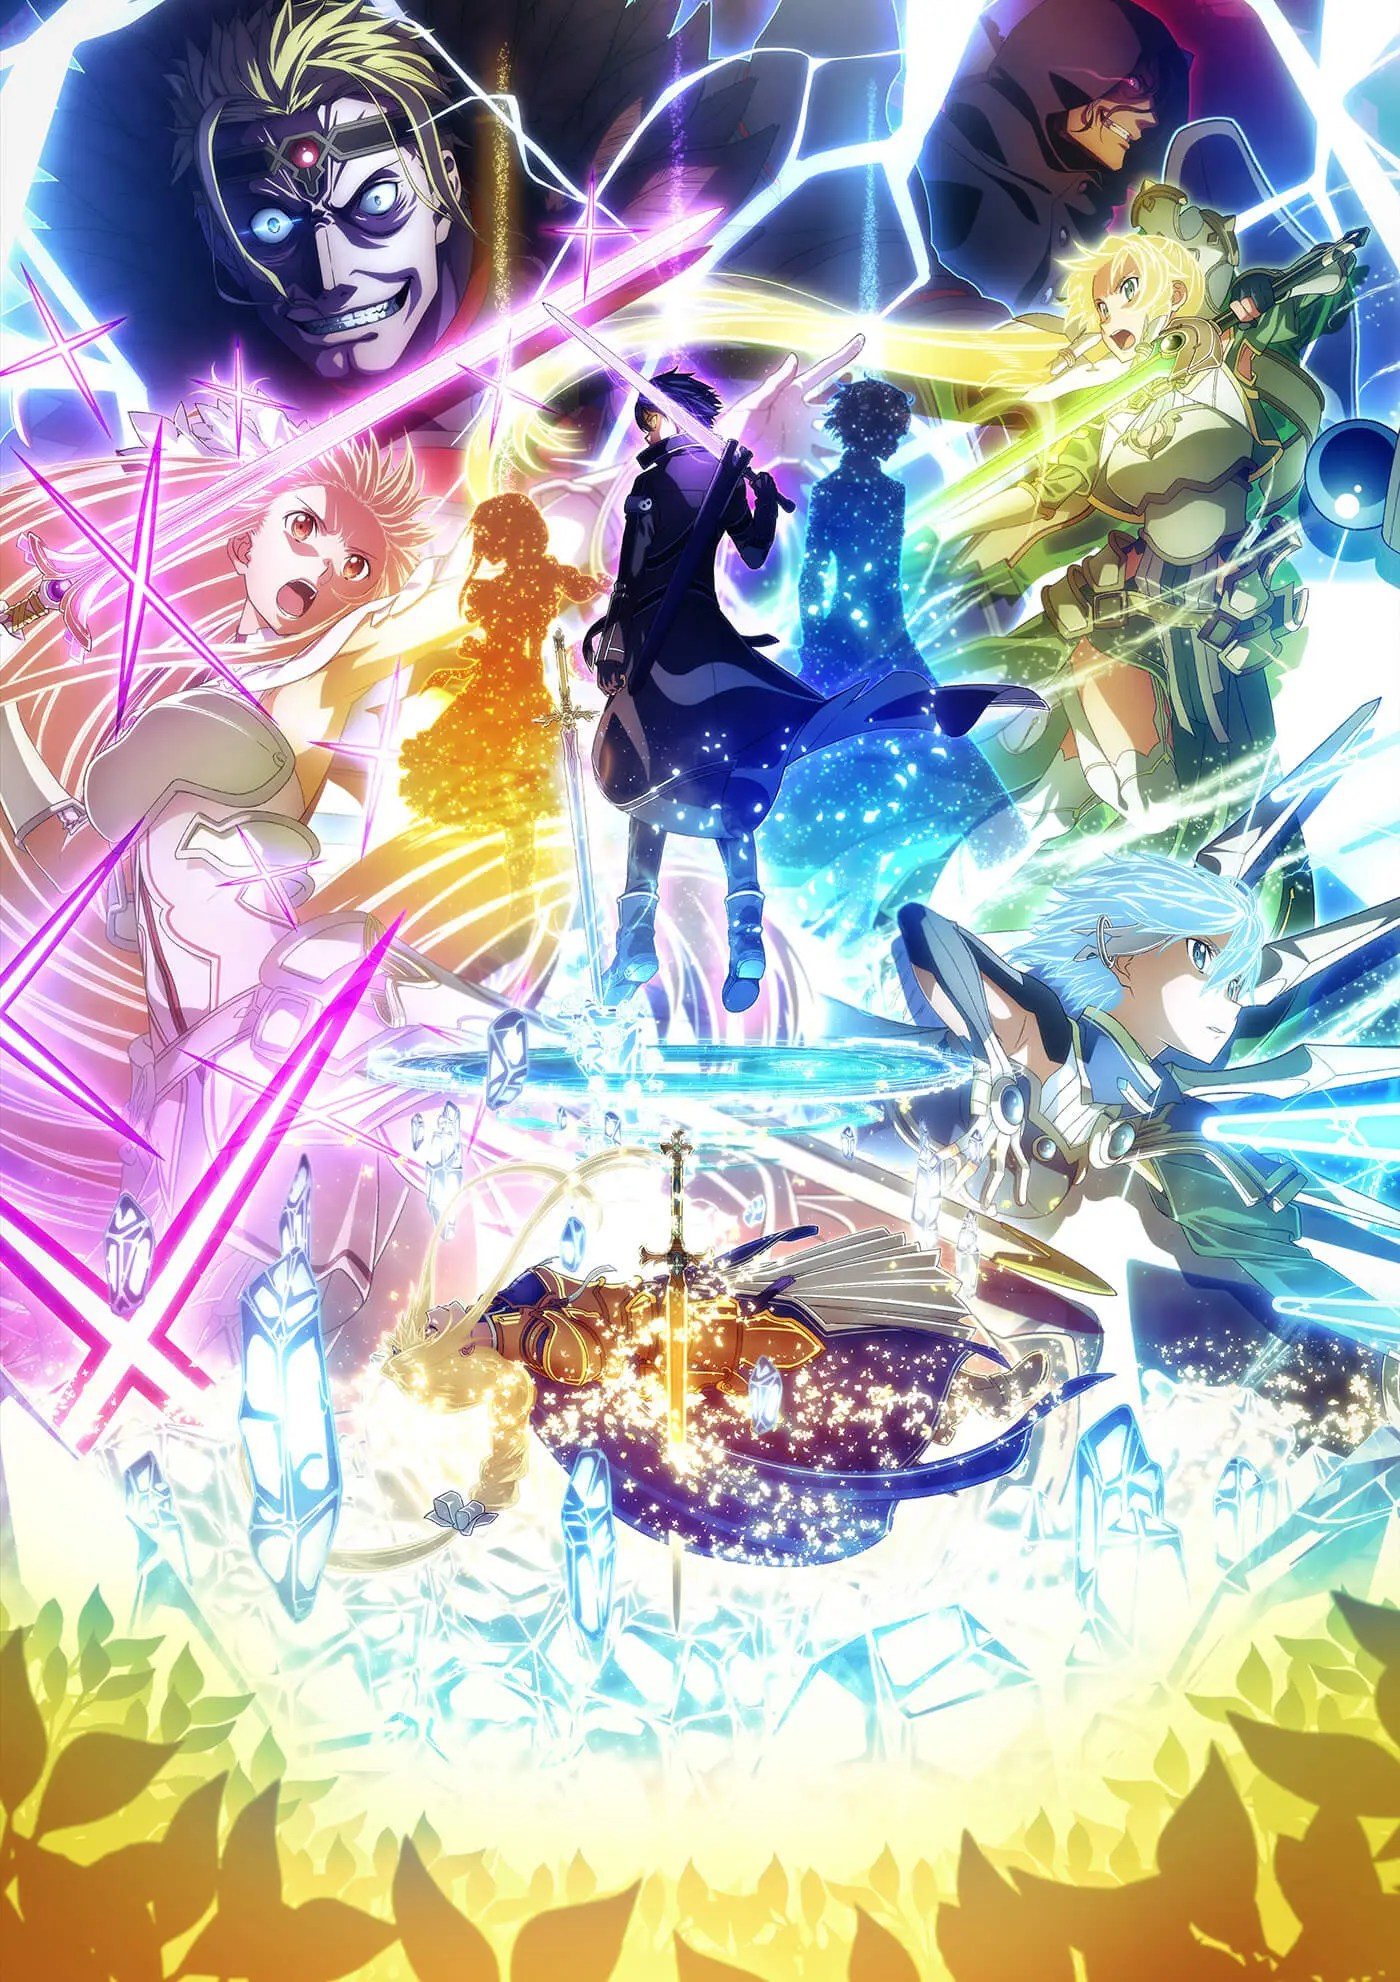 Annonce du report de la partie 2 de Sword Art Online Alicization War of Underworld